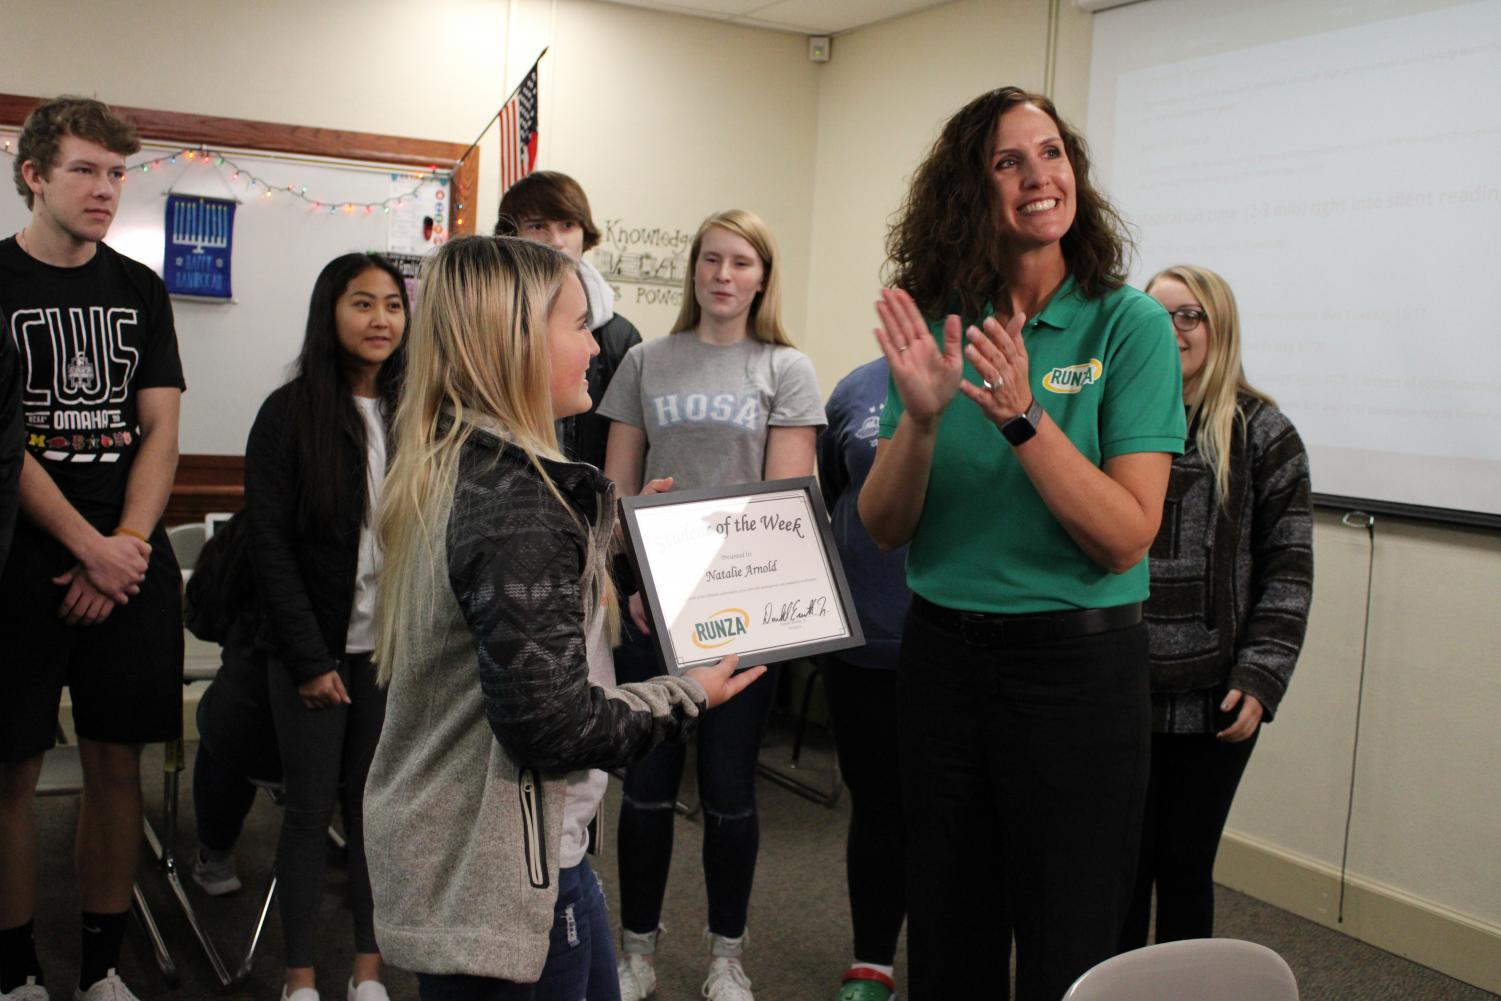 Natalie Arnold receiving her Student of the week award from Runza.